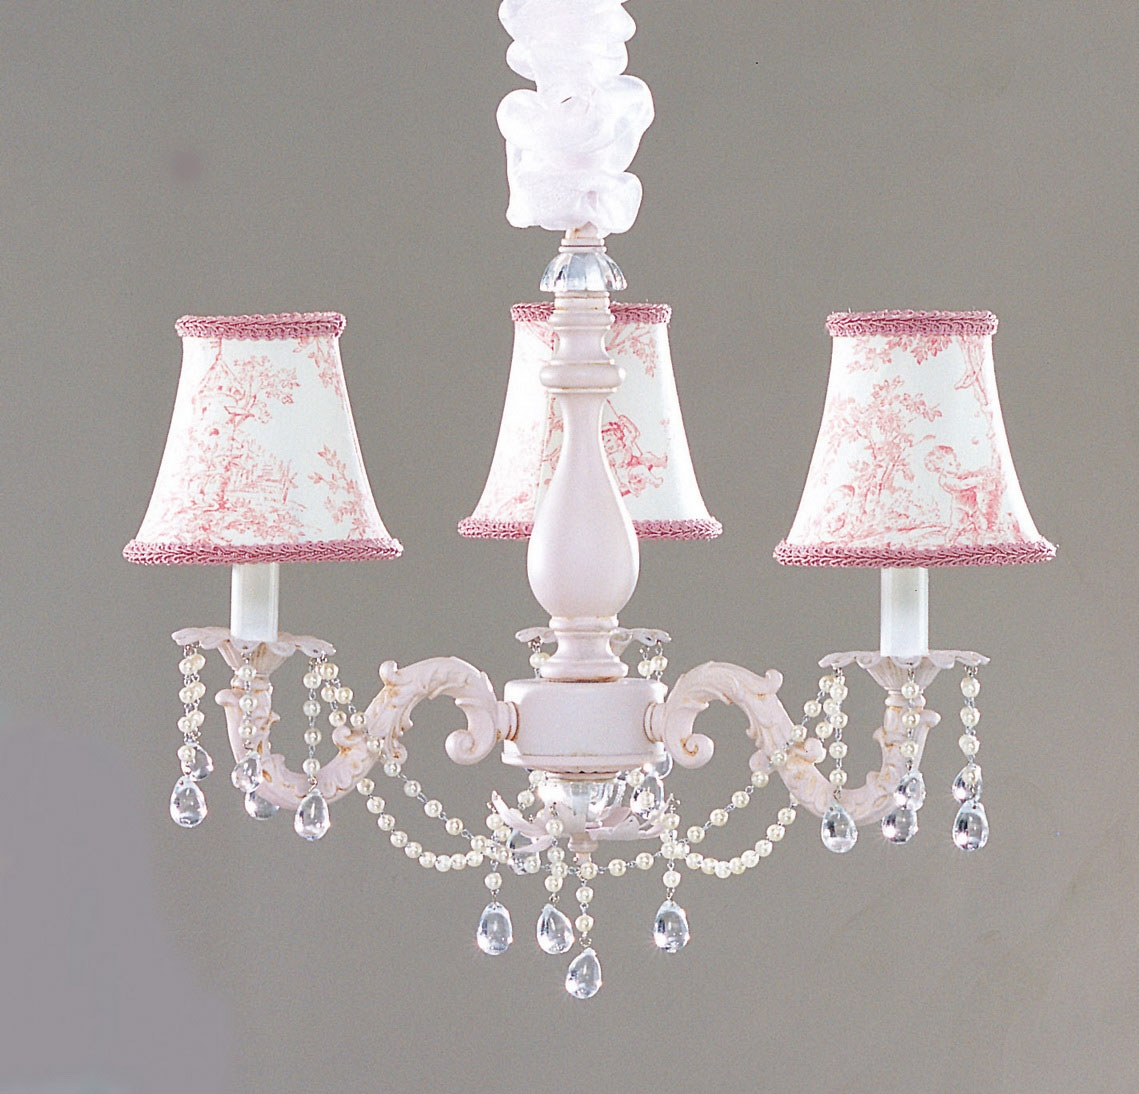 Furniture Hot Chandelier For Ba Nursery Room With Small Blue Inside Crystal Chandeliers For Baby Girl Room (View 23 of 25)